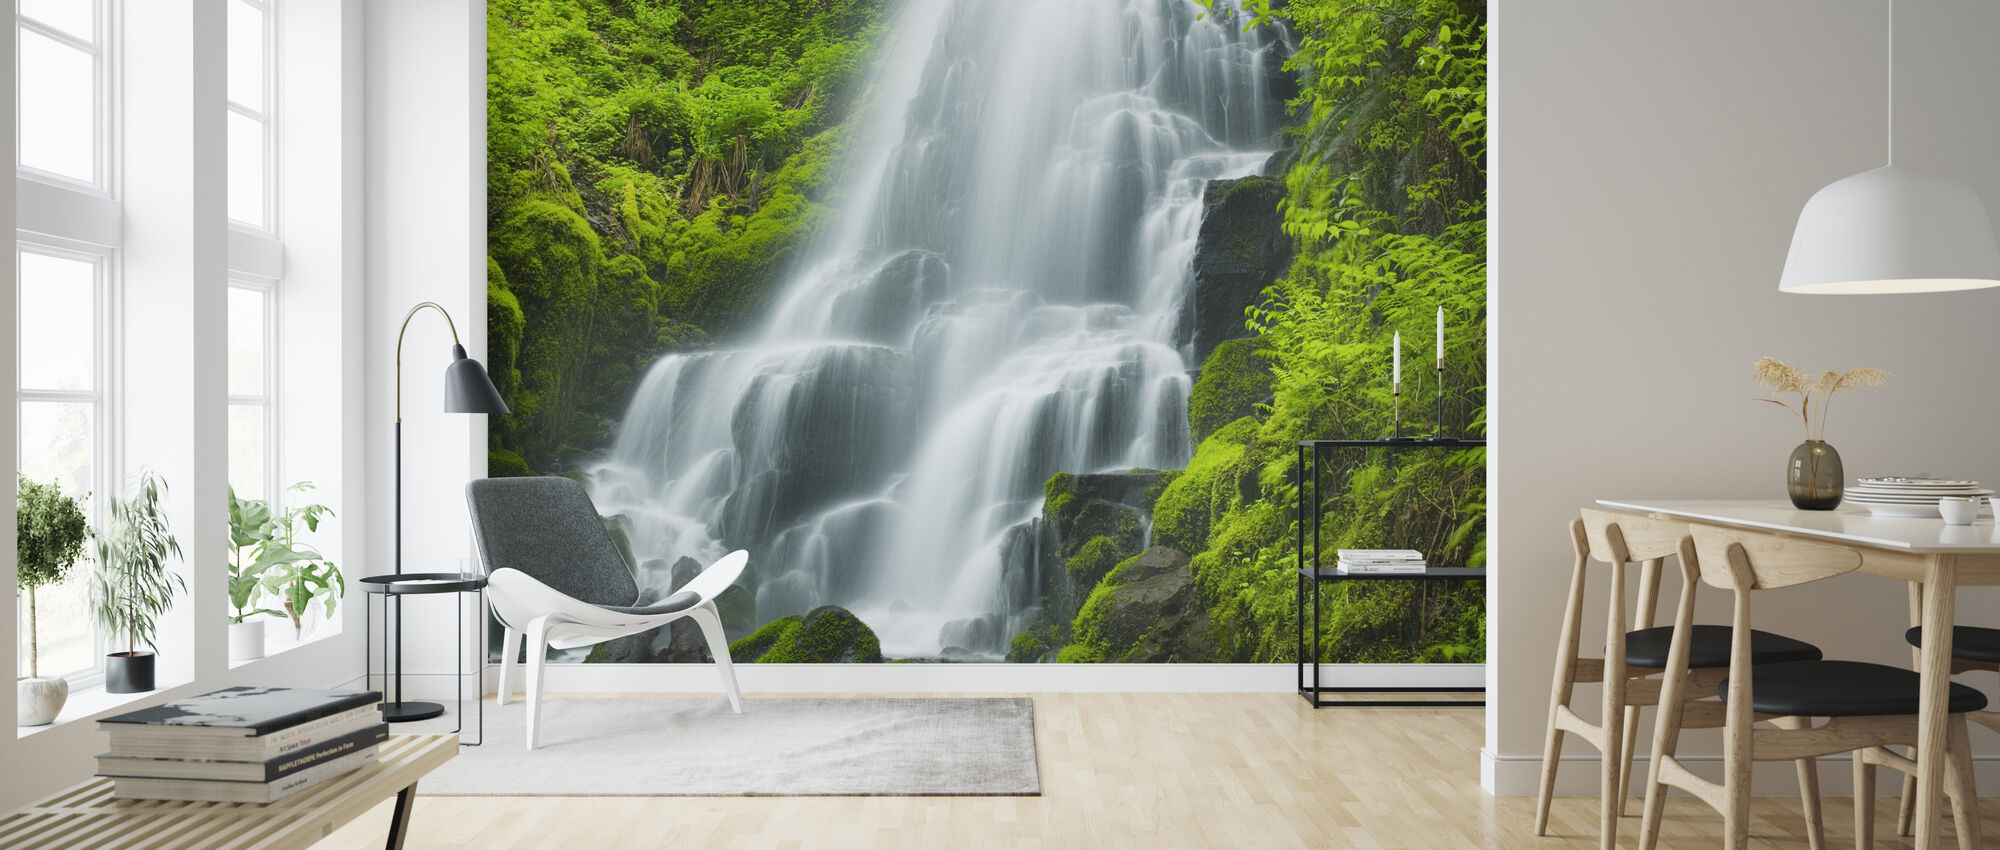 Fairy Falls - Wallpaper - Living Room